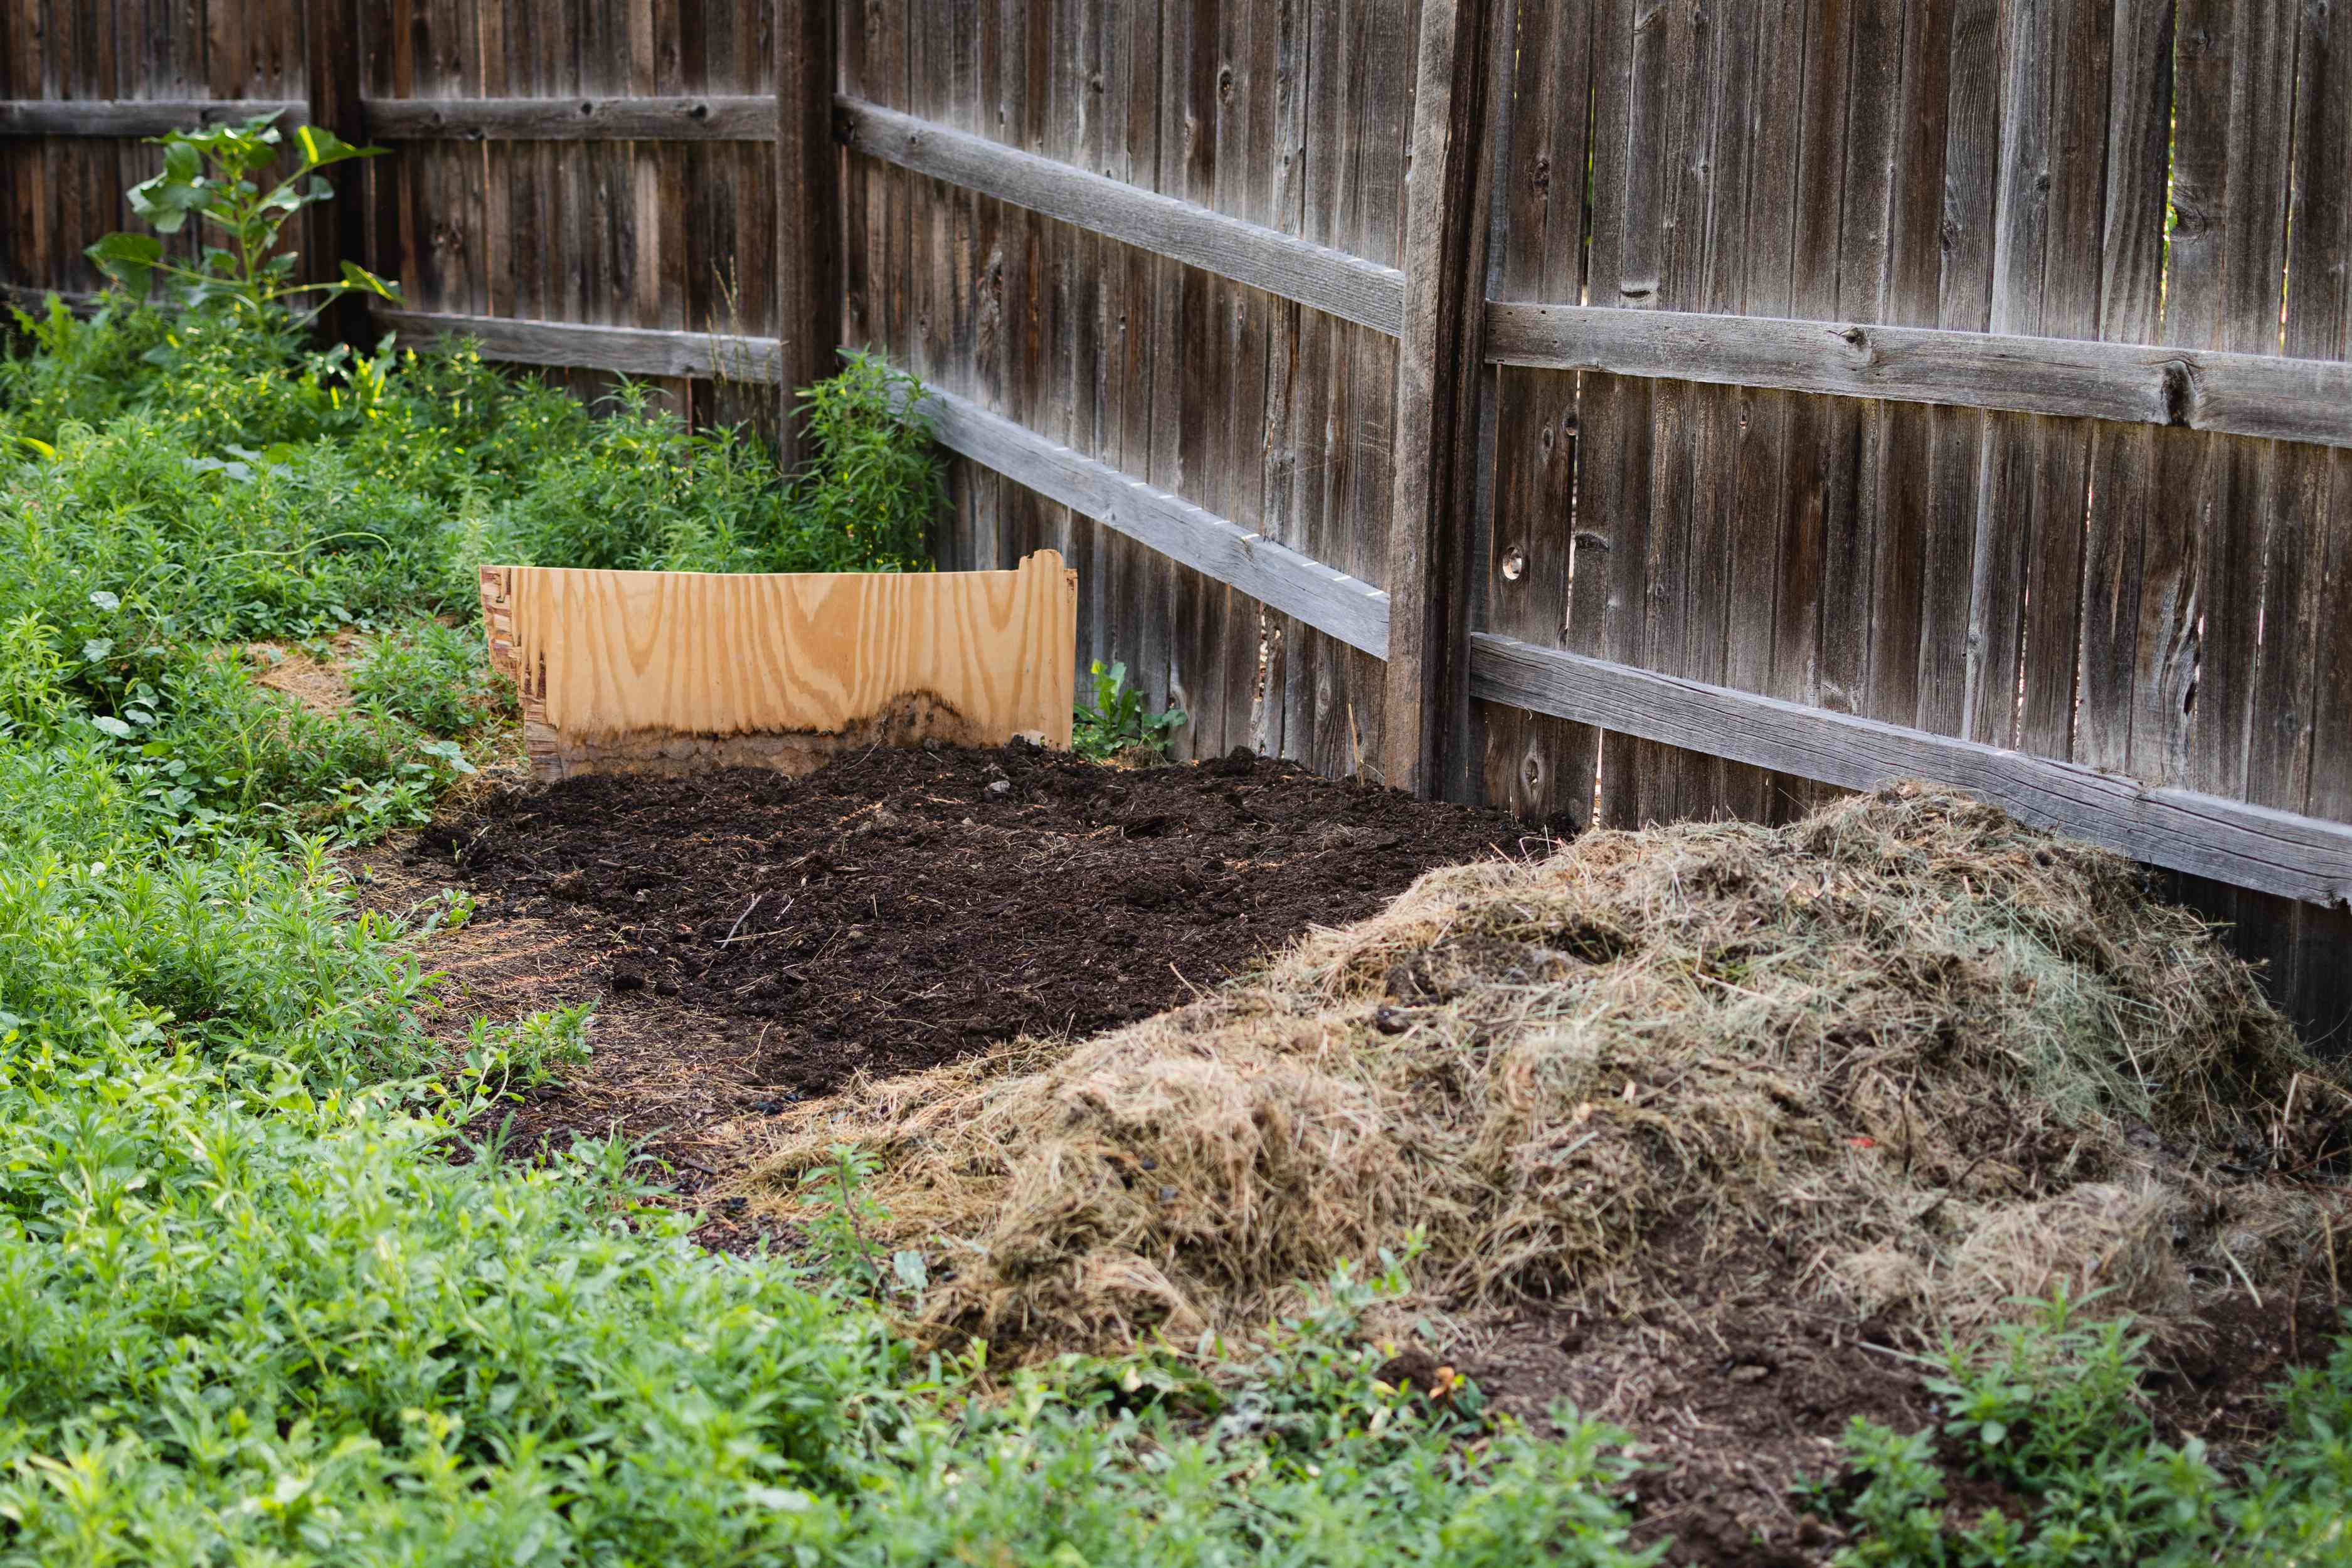 Composting pile location in backyard next to wooden fence